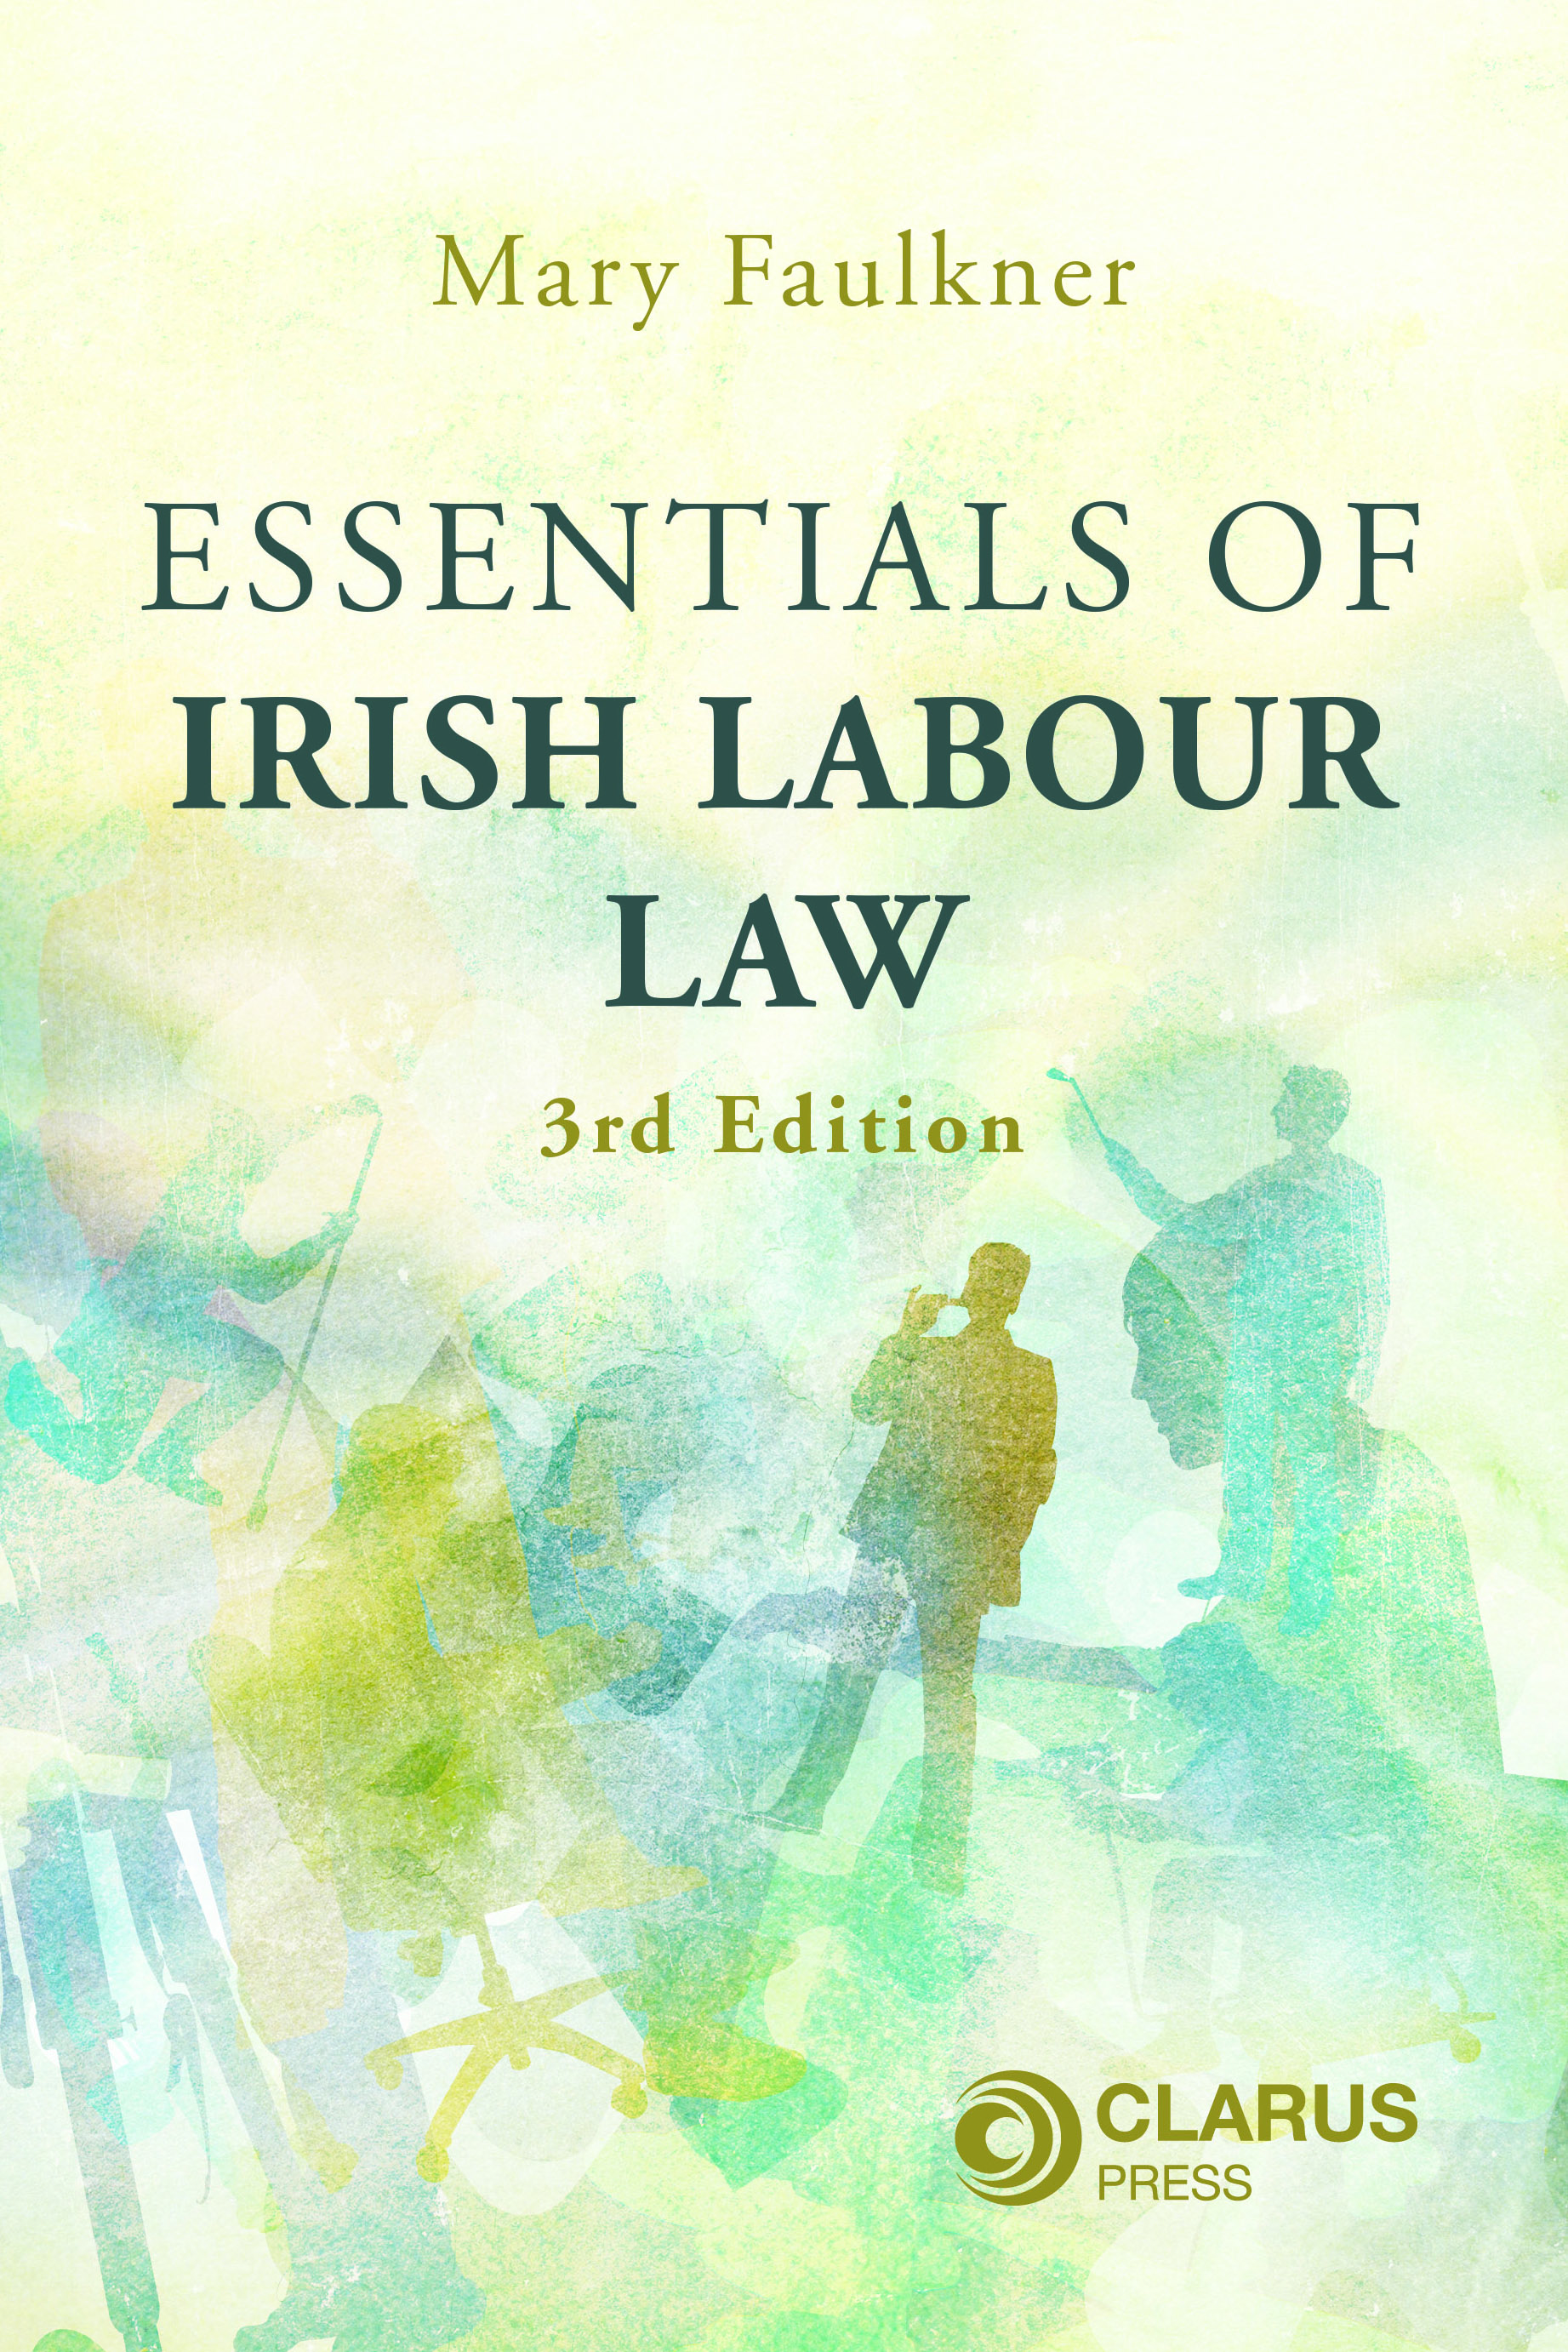 Six of the best law books